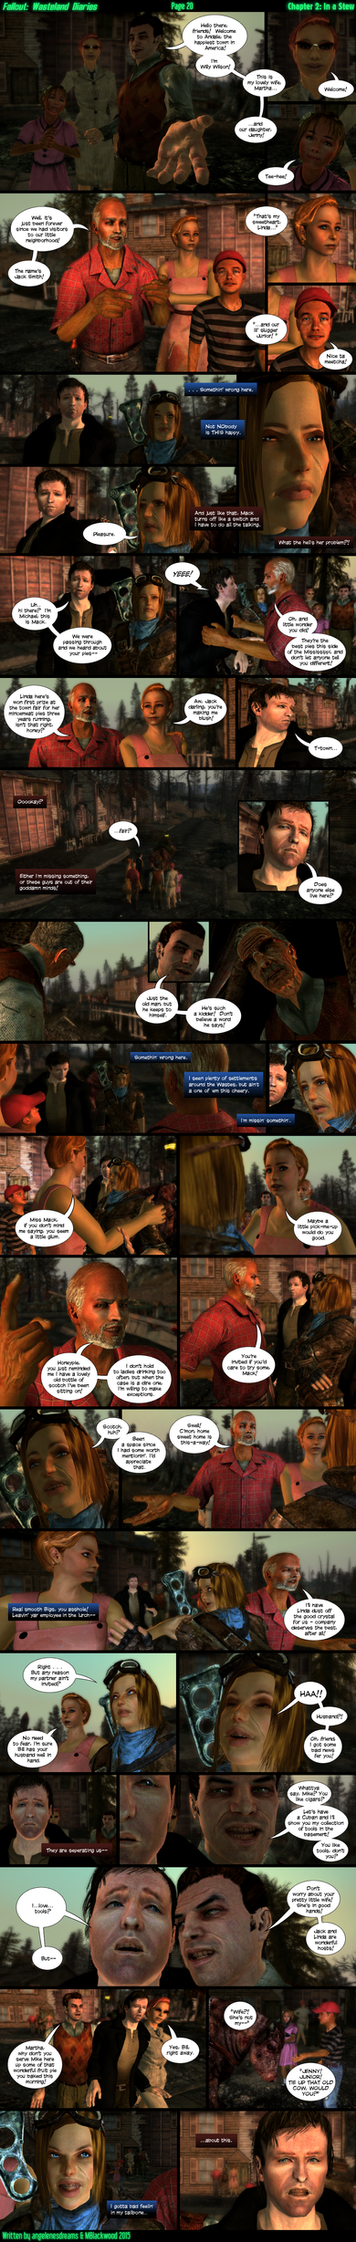 Wasteland Diaries - Page 20 by angelenesdreams